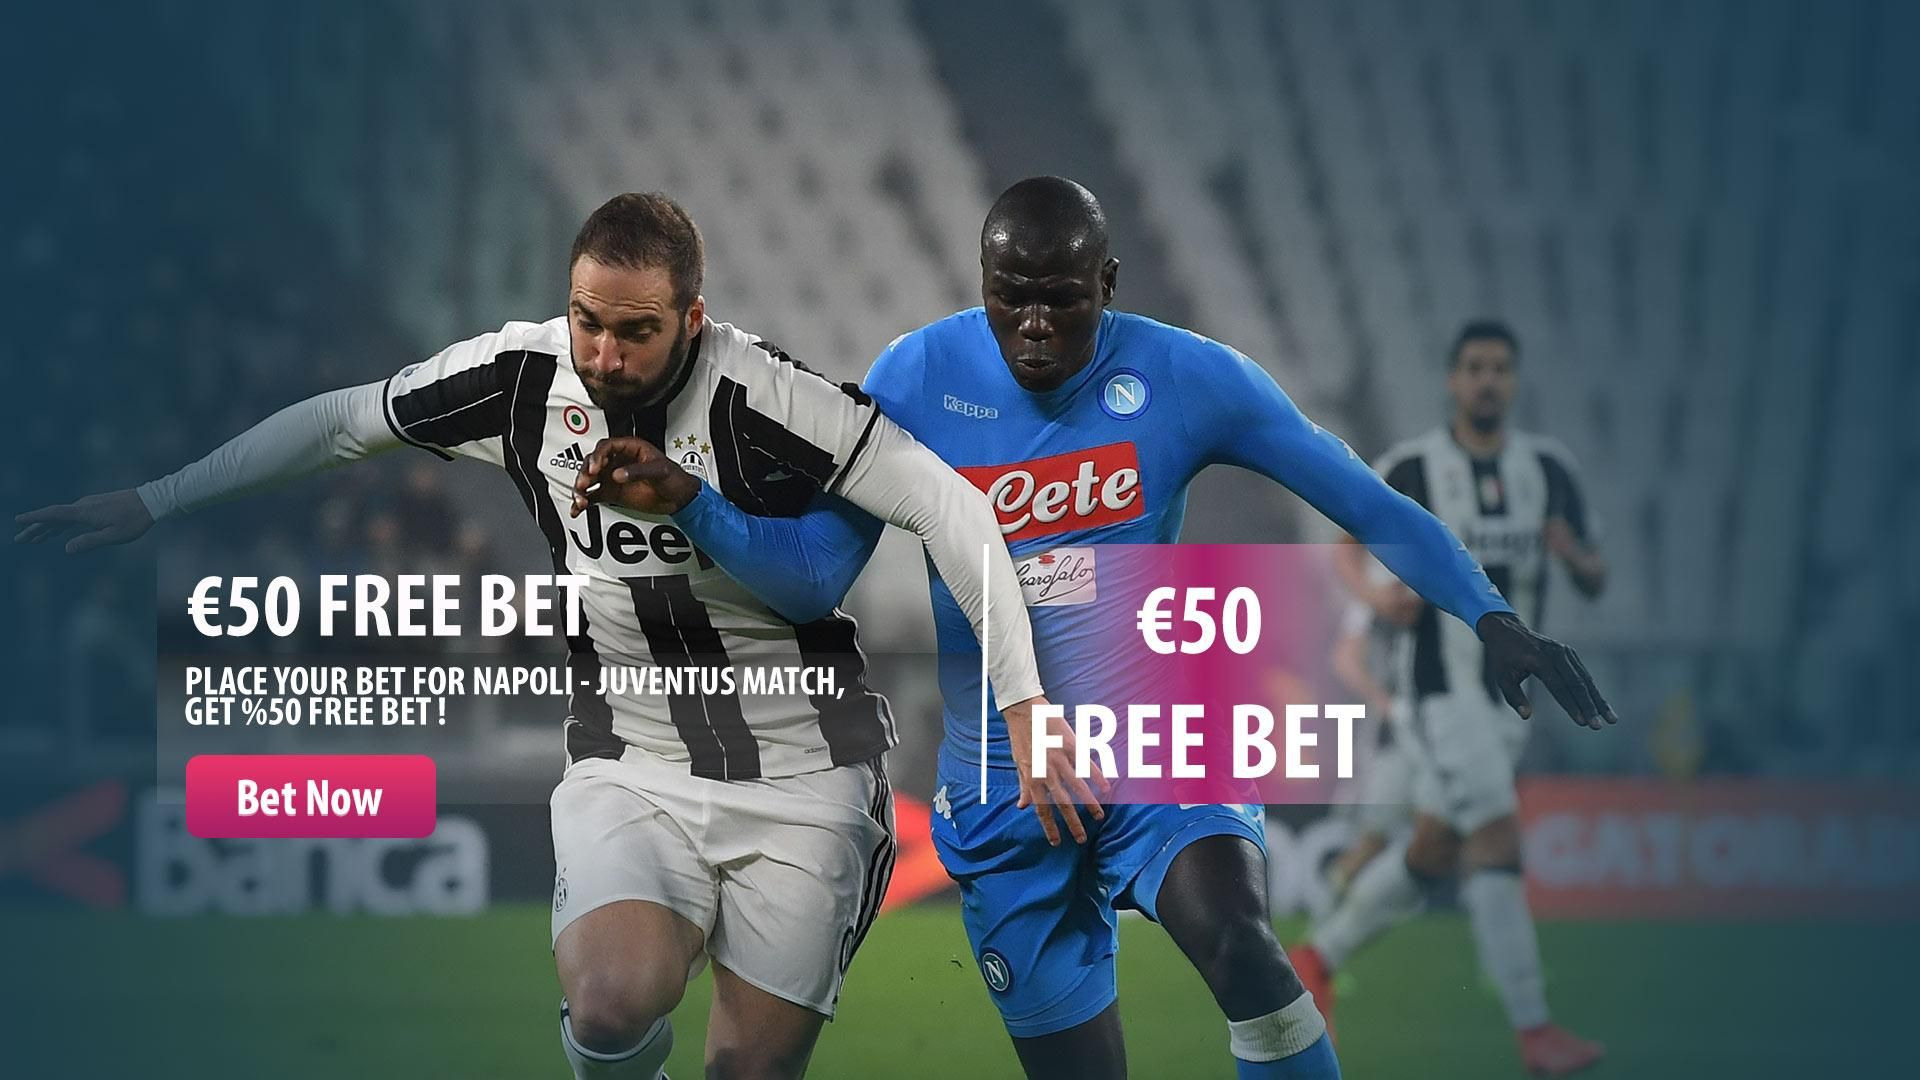 GET €50 FREE BET ! Make your bet to Napoli Juventus